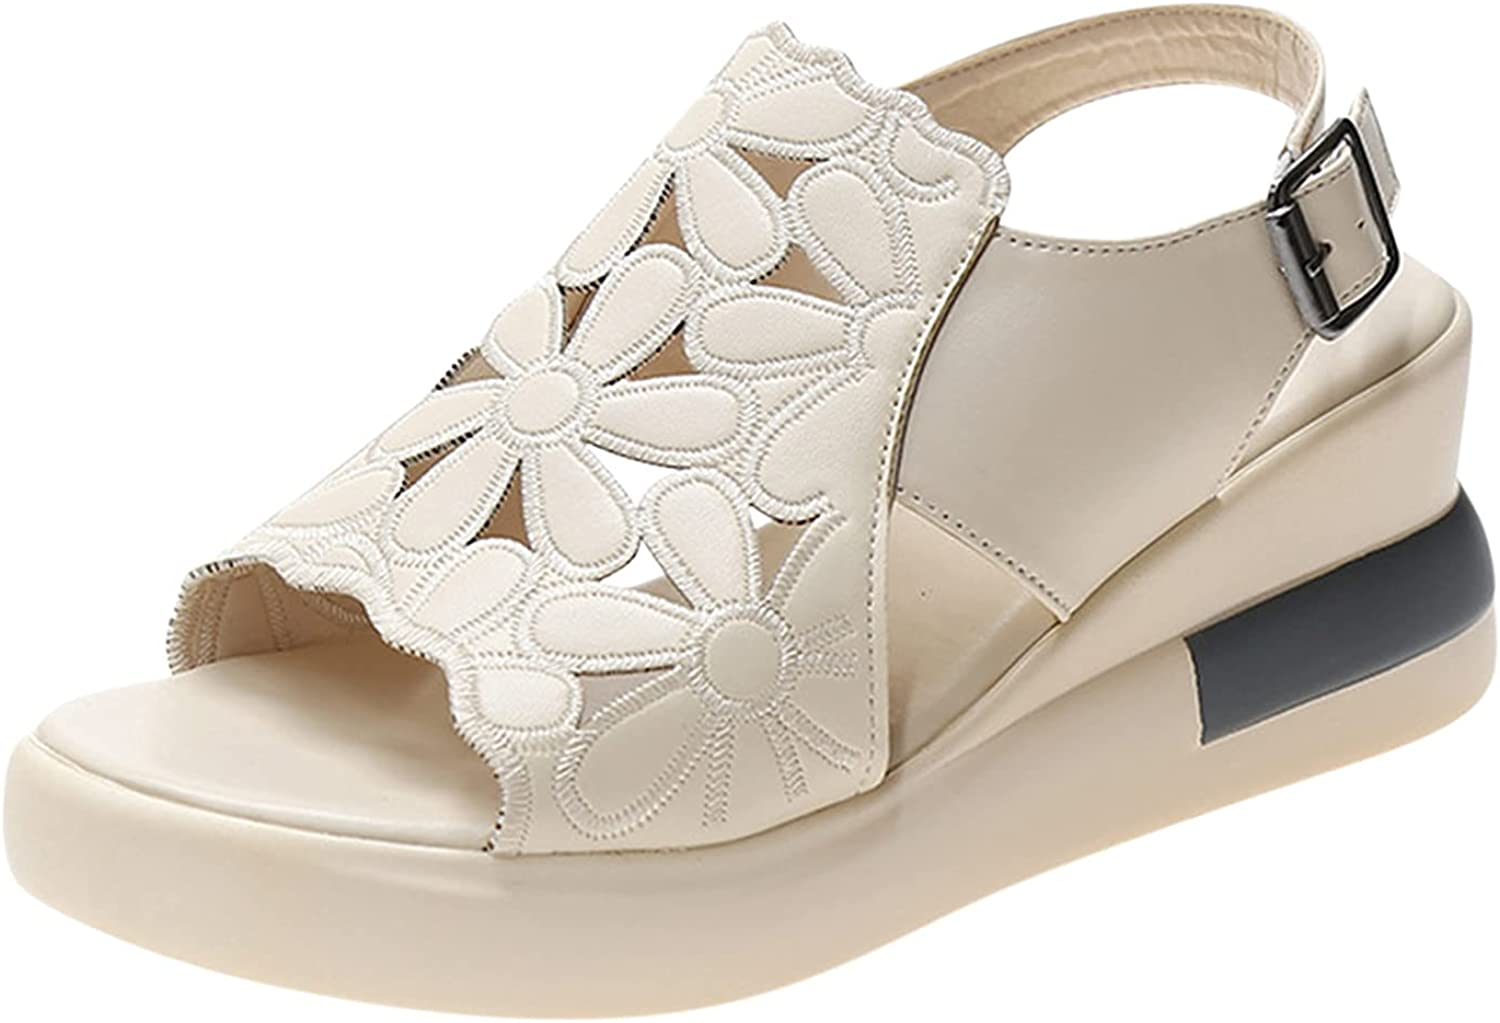 Gyouanime Shoes Platform peep Toe for Womens Sandals Wedge Summe Trust Tulsa Mall